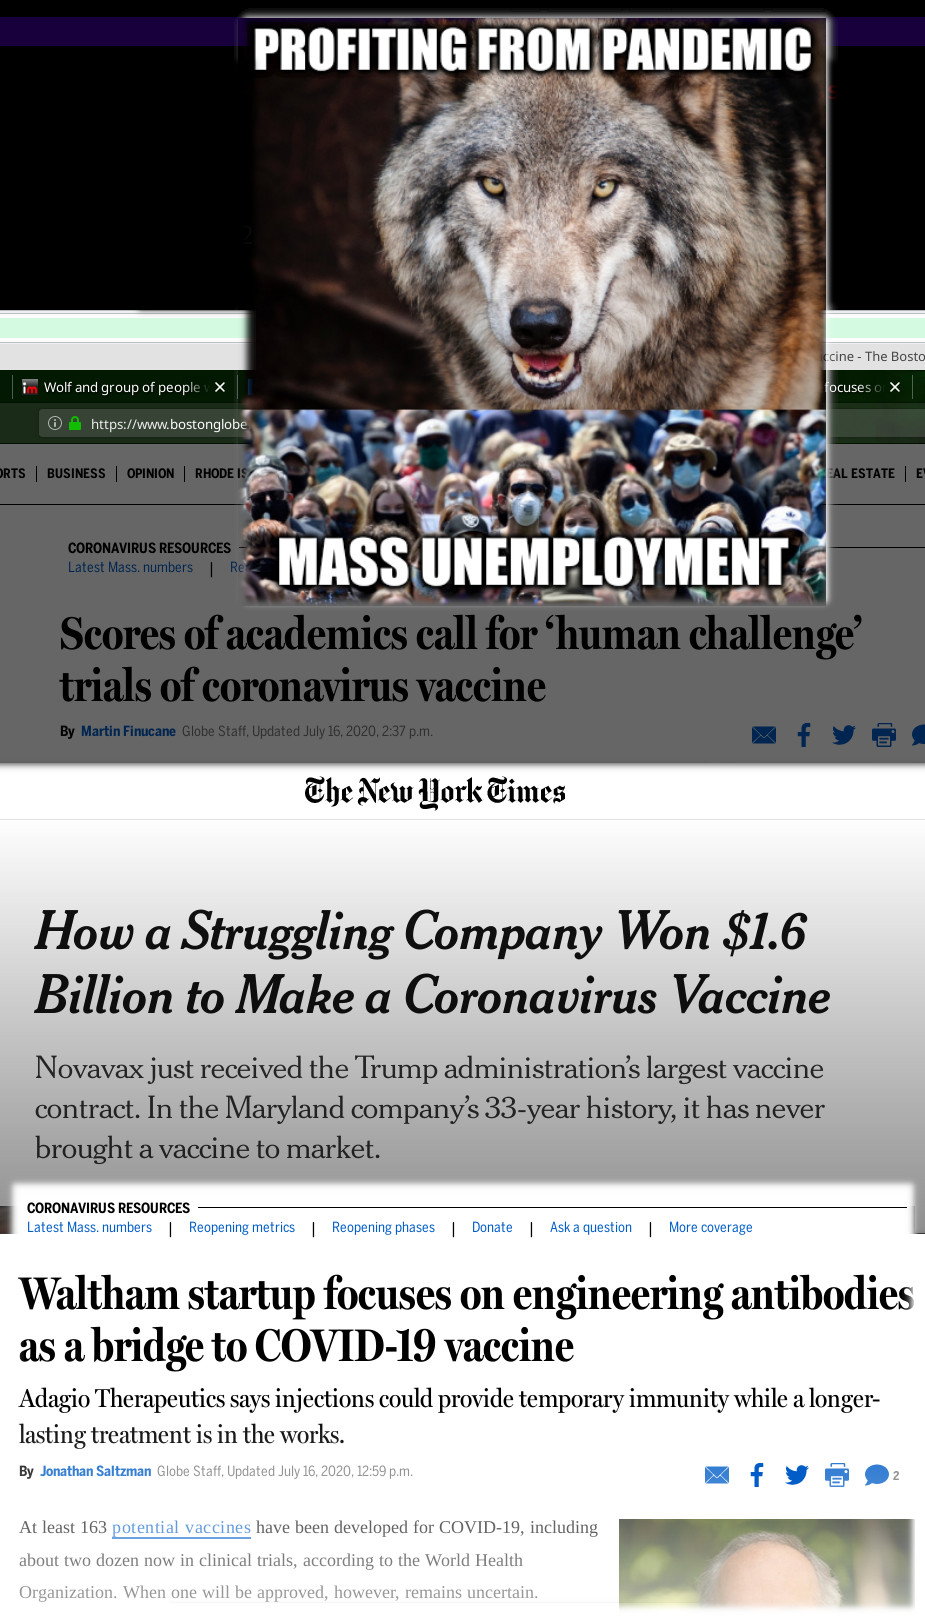 Wolf and group of people with face masks: Profiting from pandemic; mass unemployment